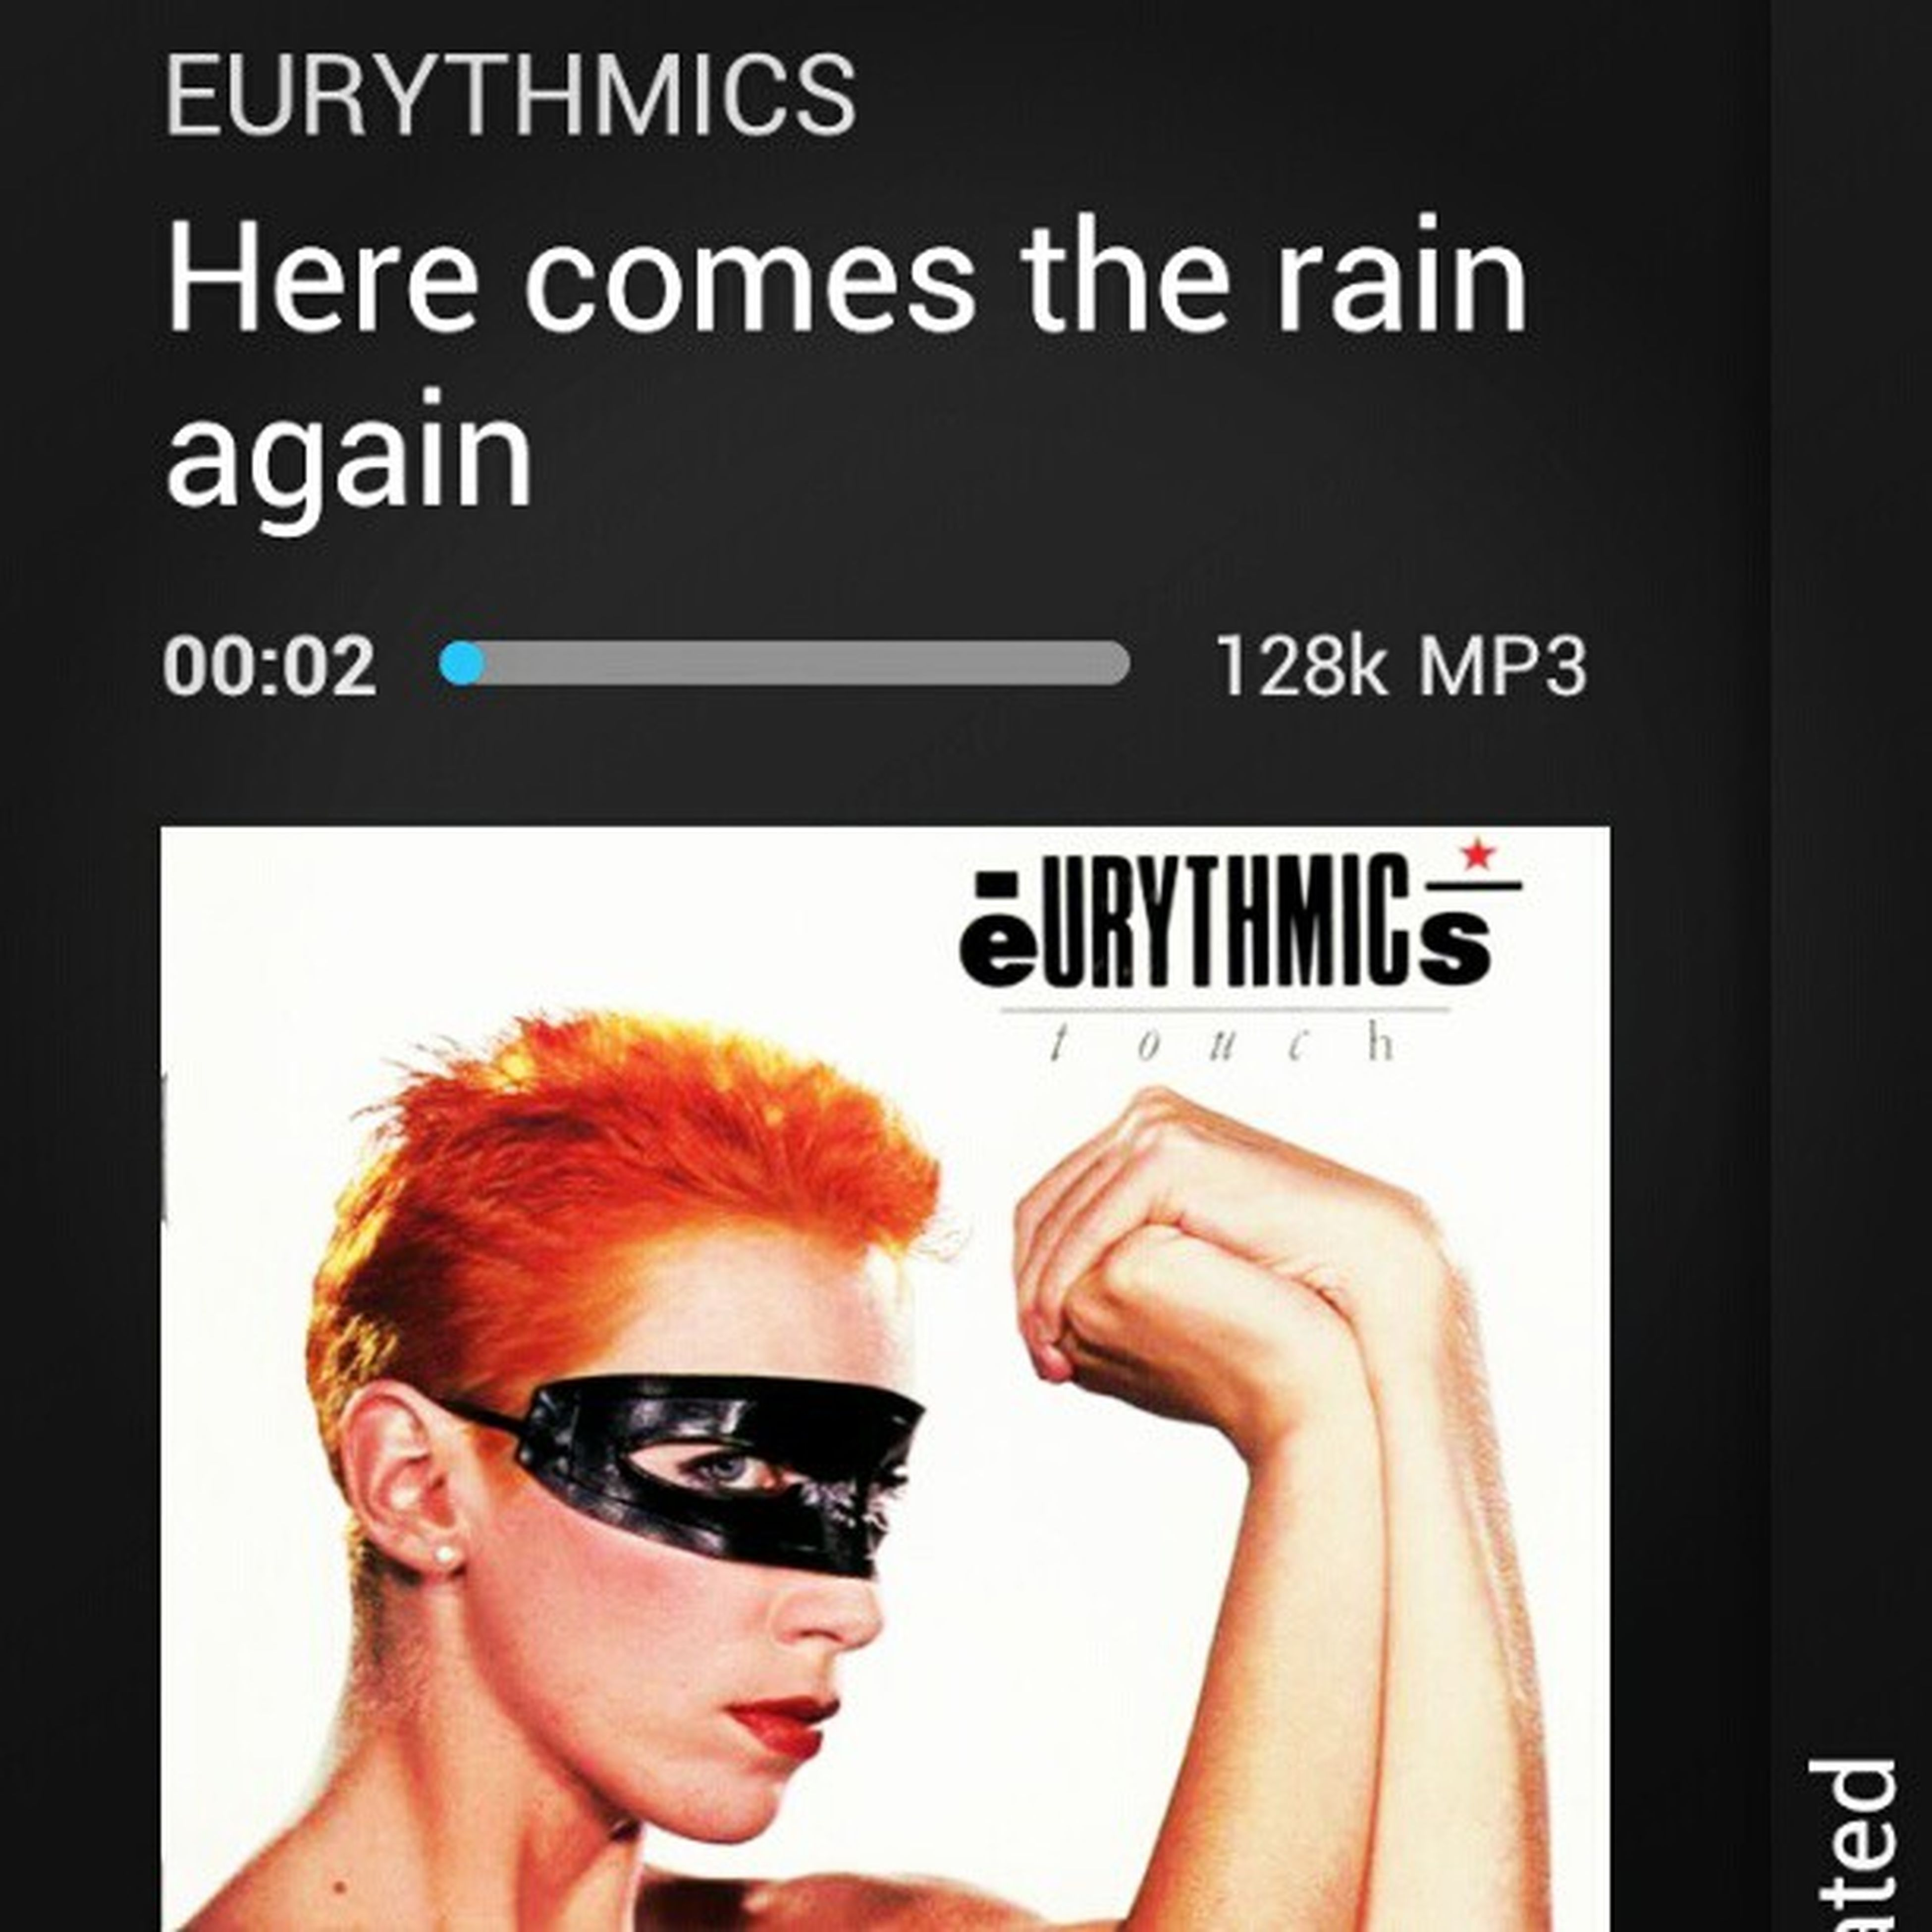 Here comes the rain again!!! Indeed it's raining here yay! :) Eurythmix EnnieLennox